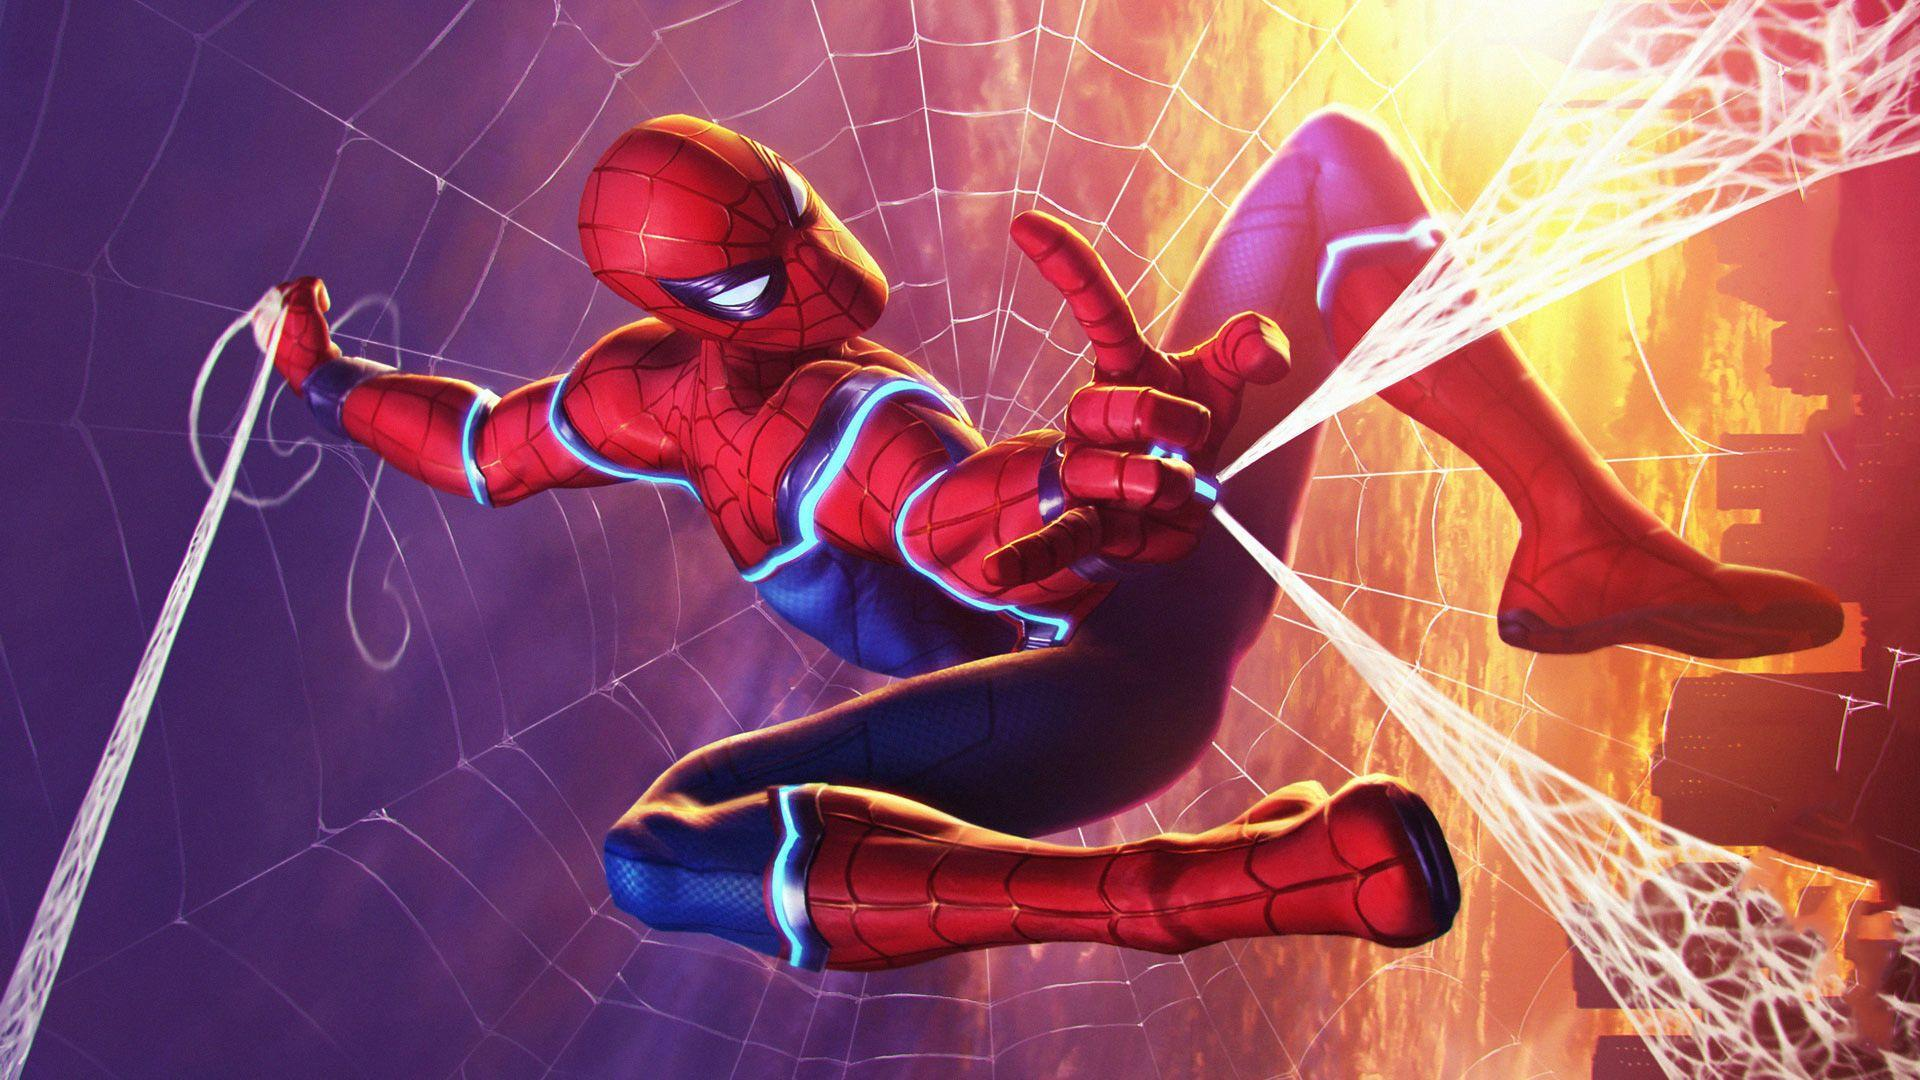 Marvels Spiderman Wallpapers - Wallpaper Cave